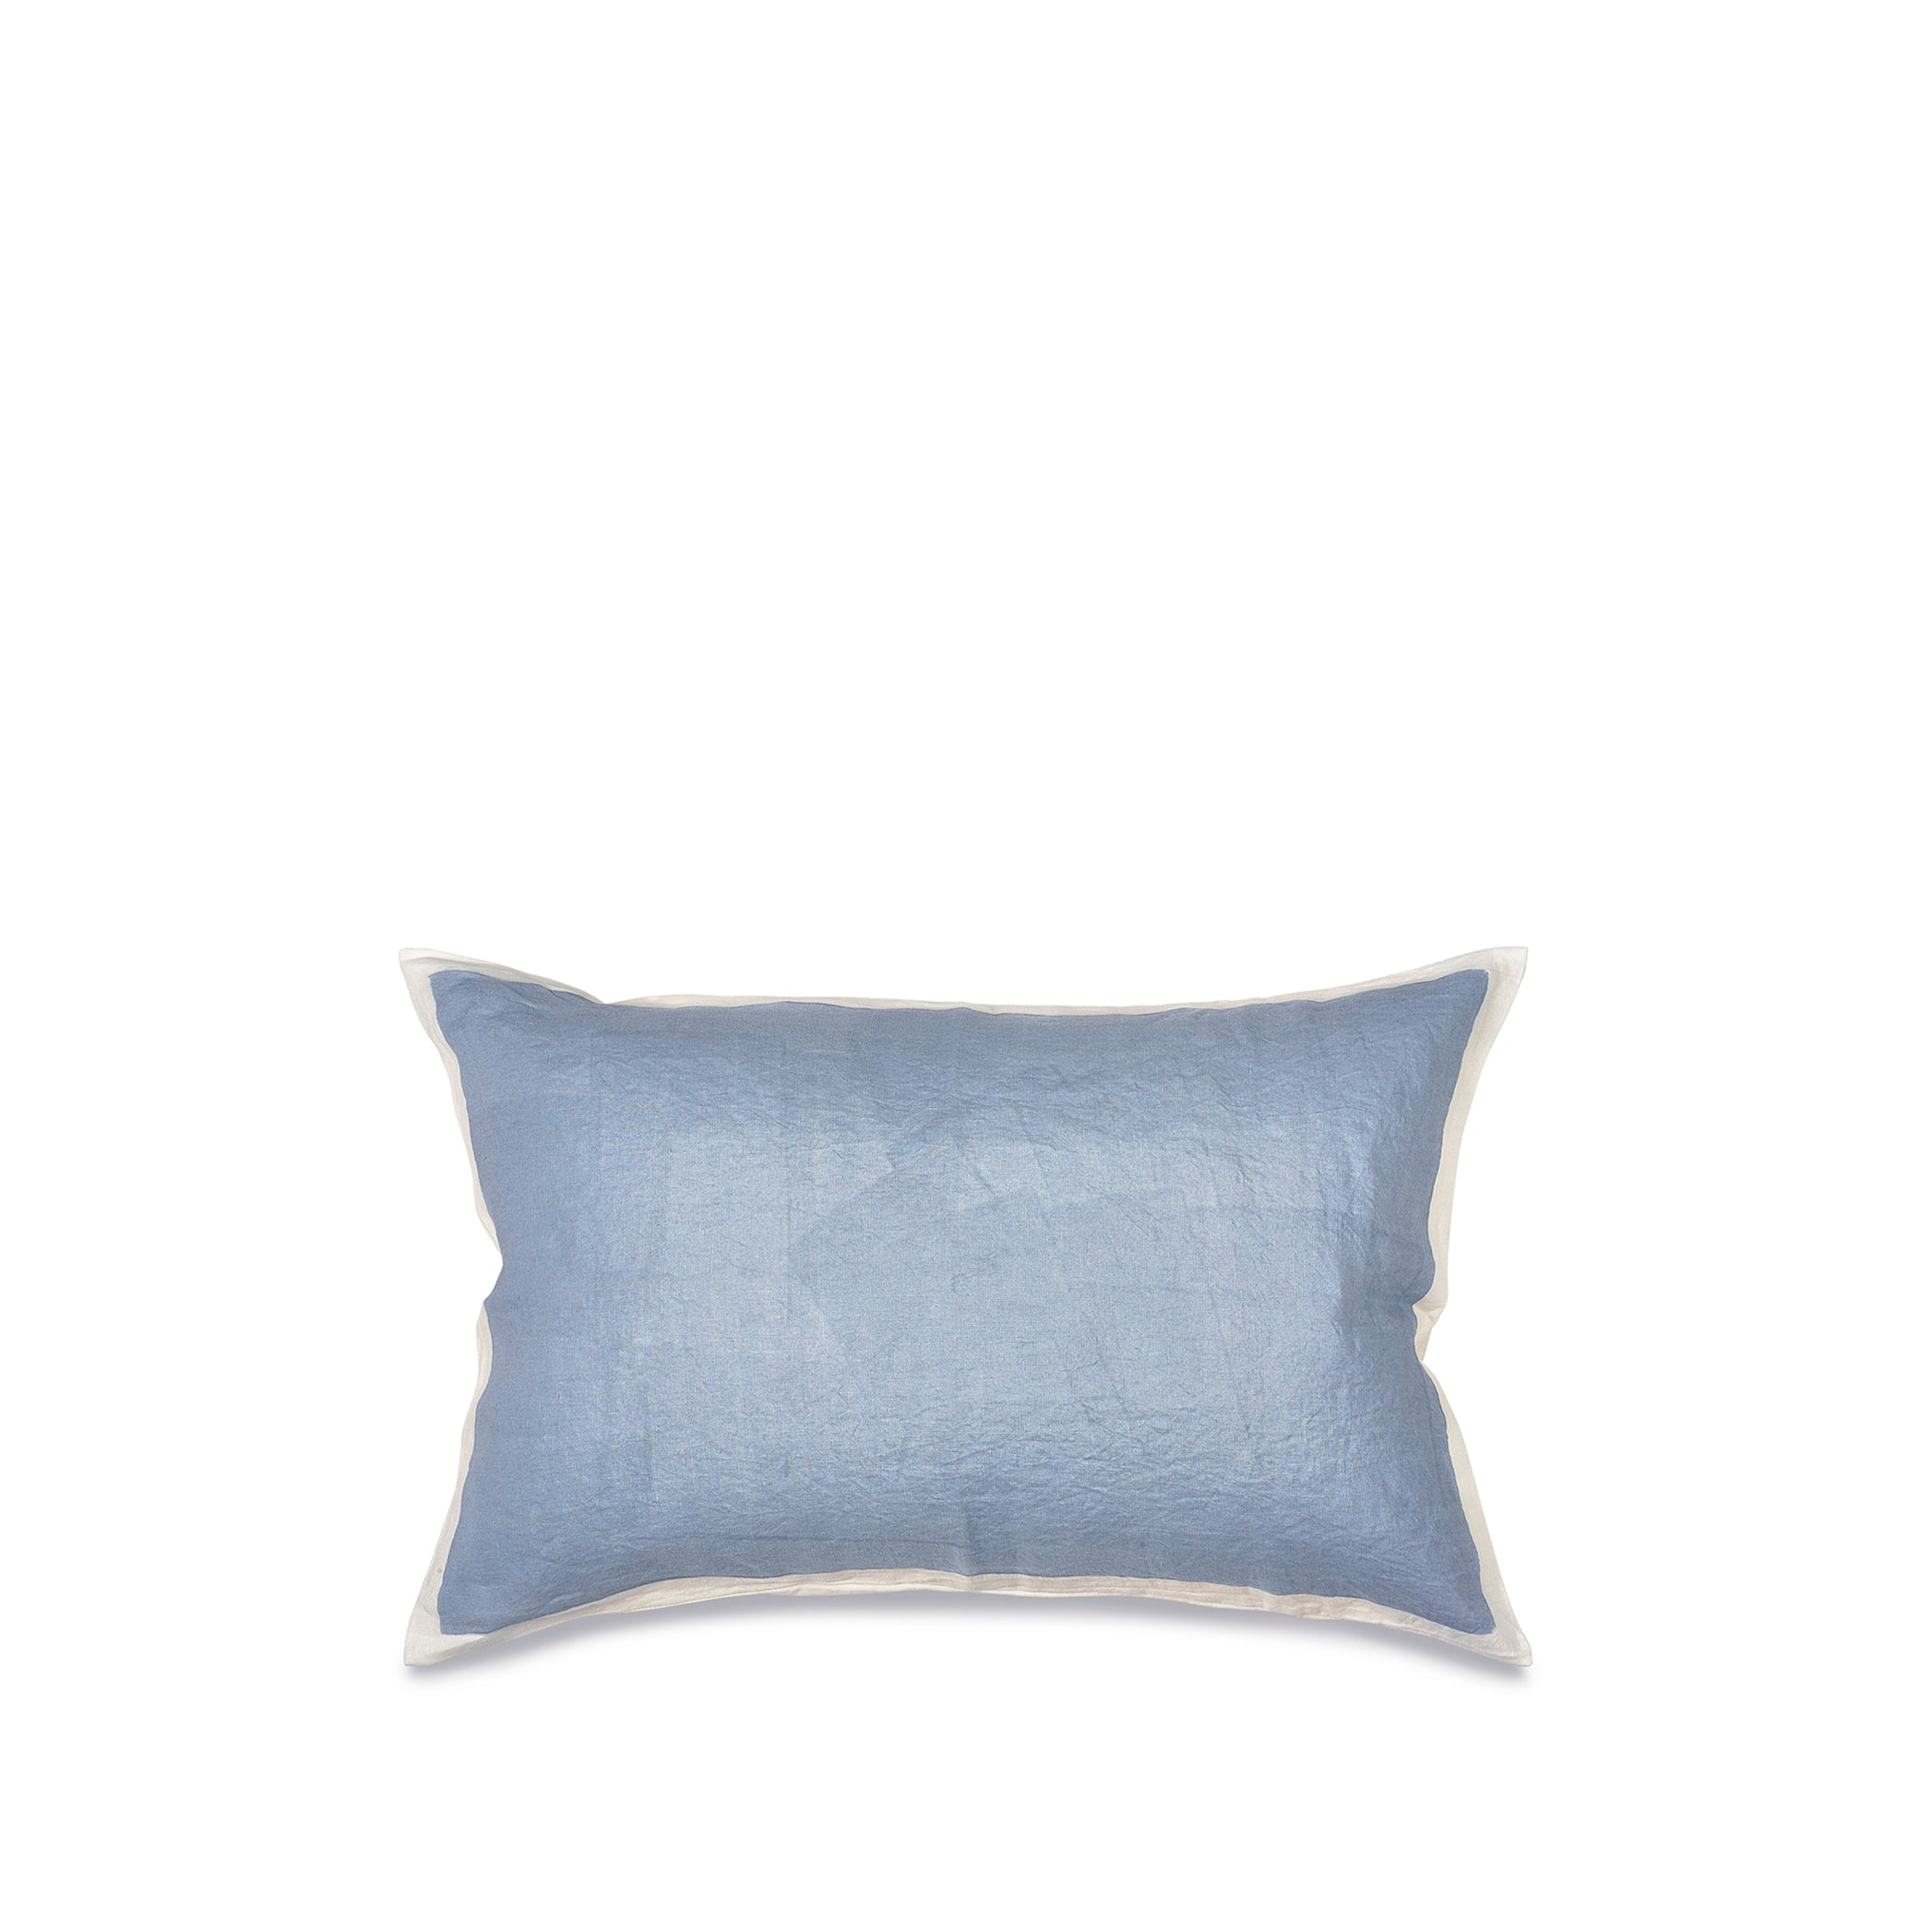 Hand Painted Linen Cushion Cover in Pale Blue, 60cm x 40cm